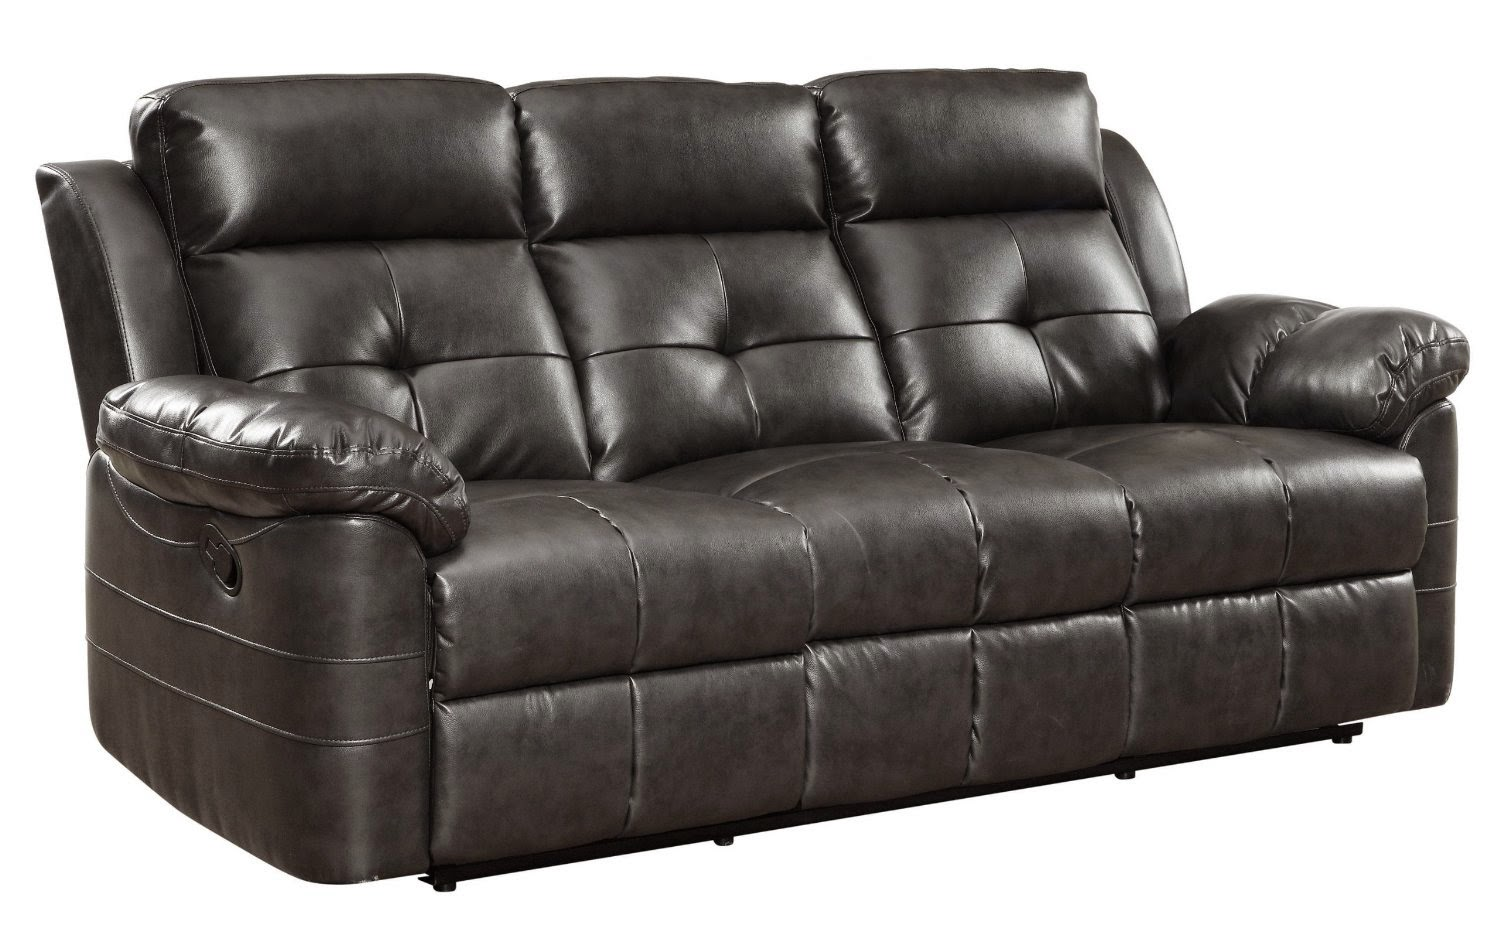 Sectional Reclining Leather Sofas Power The Best Ratings Reviews Curved